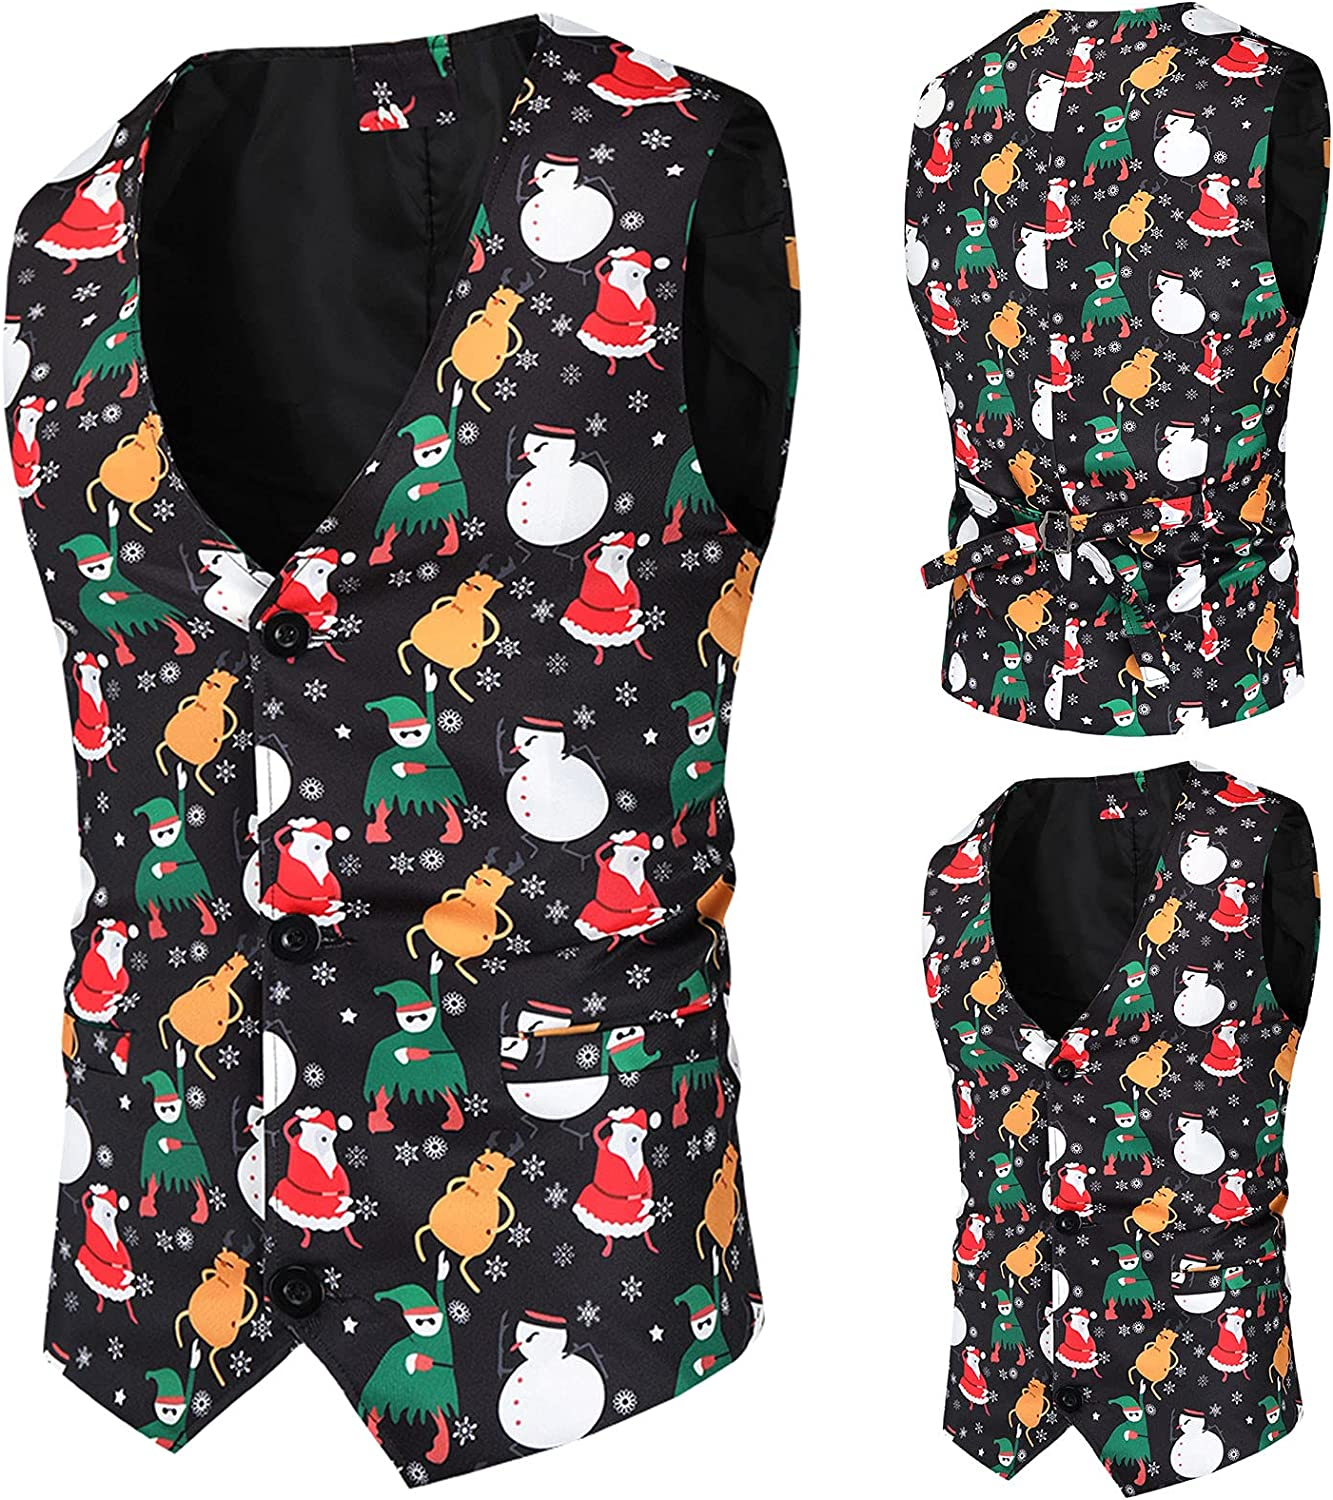 Men's Fashion Trend Personality Christmas Print Casual Vest Inner Suit Coat for Party Sleeveless Jacket